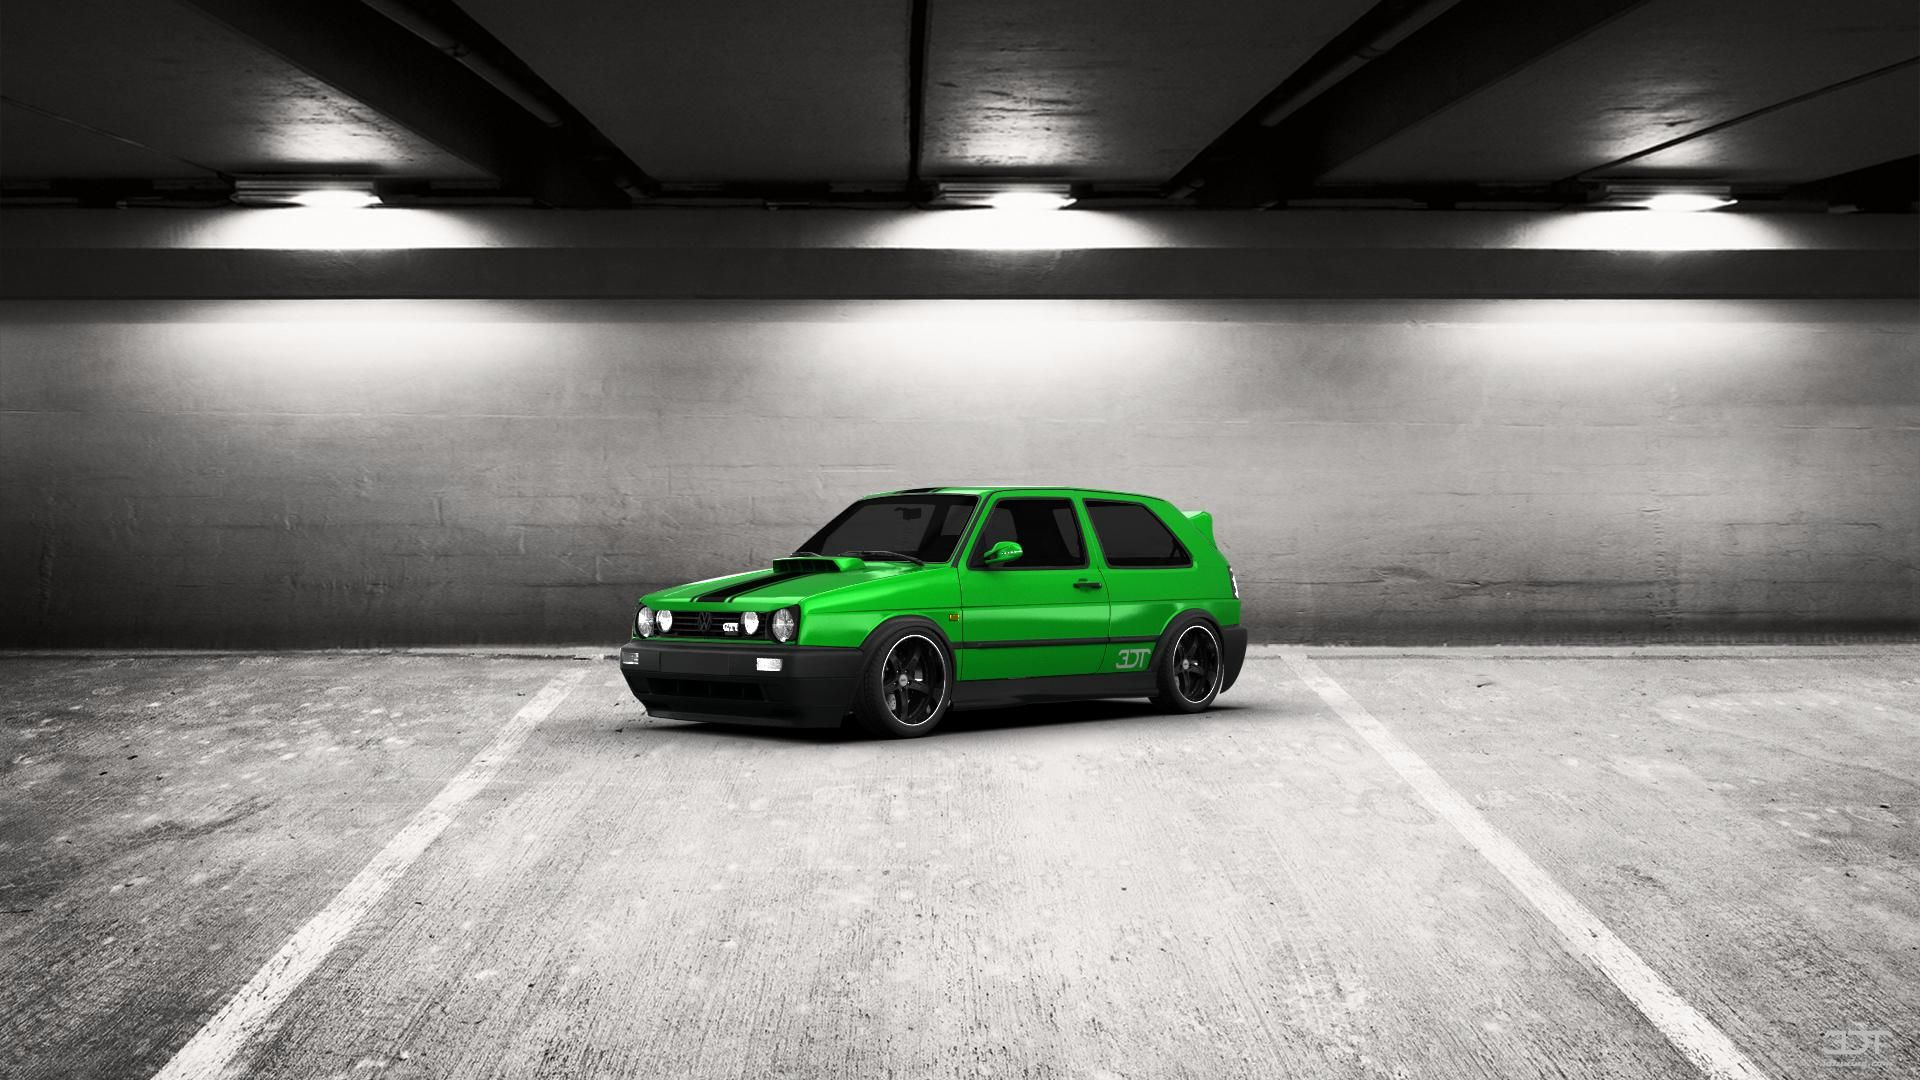 Come ti sembra il mio tuning #Volkswagen #Golf2Gti 1990 in 3DTuning #3dtuning #tuning